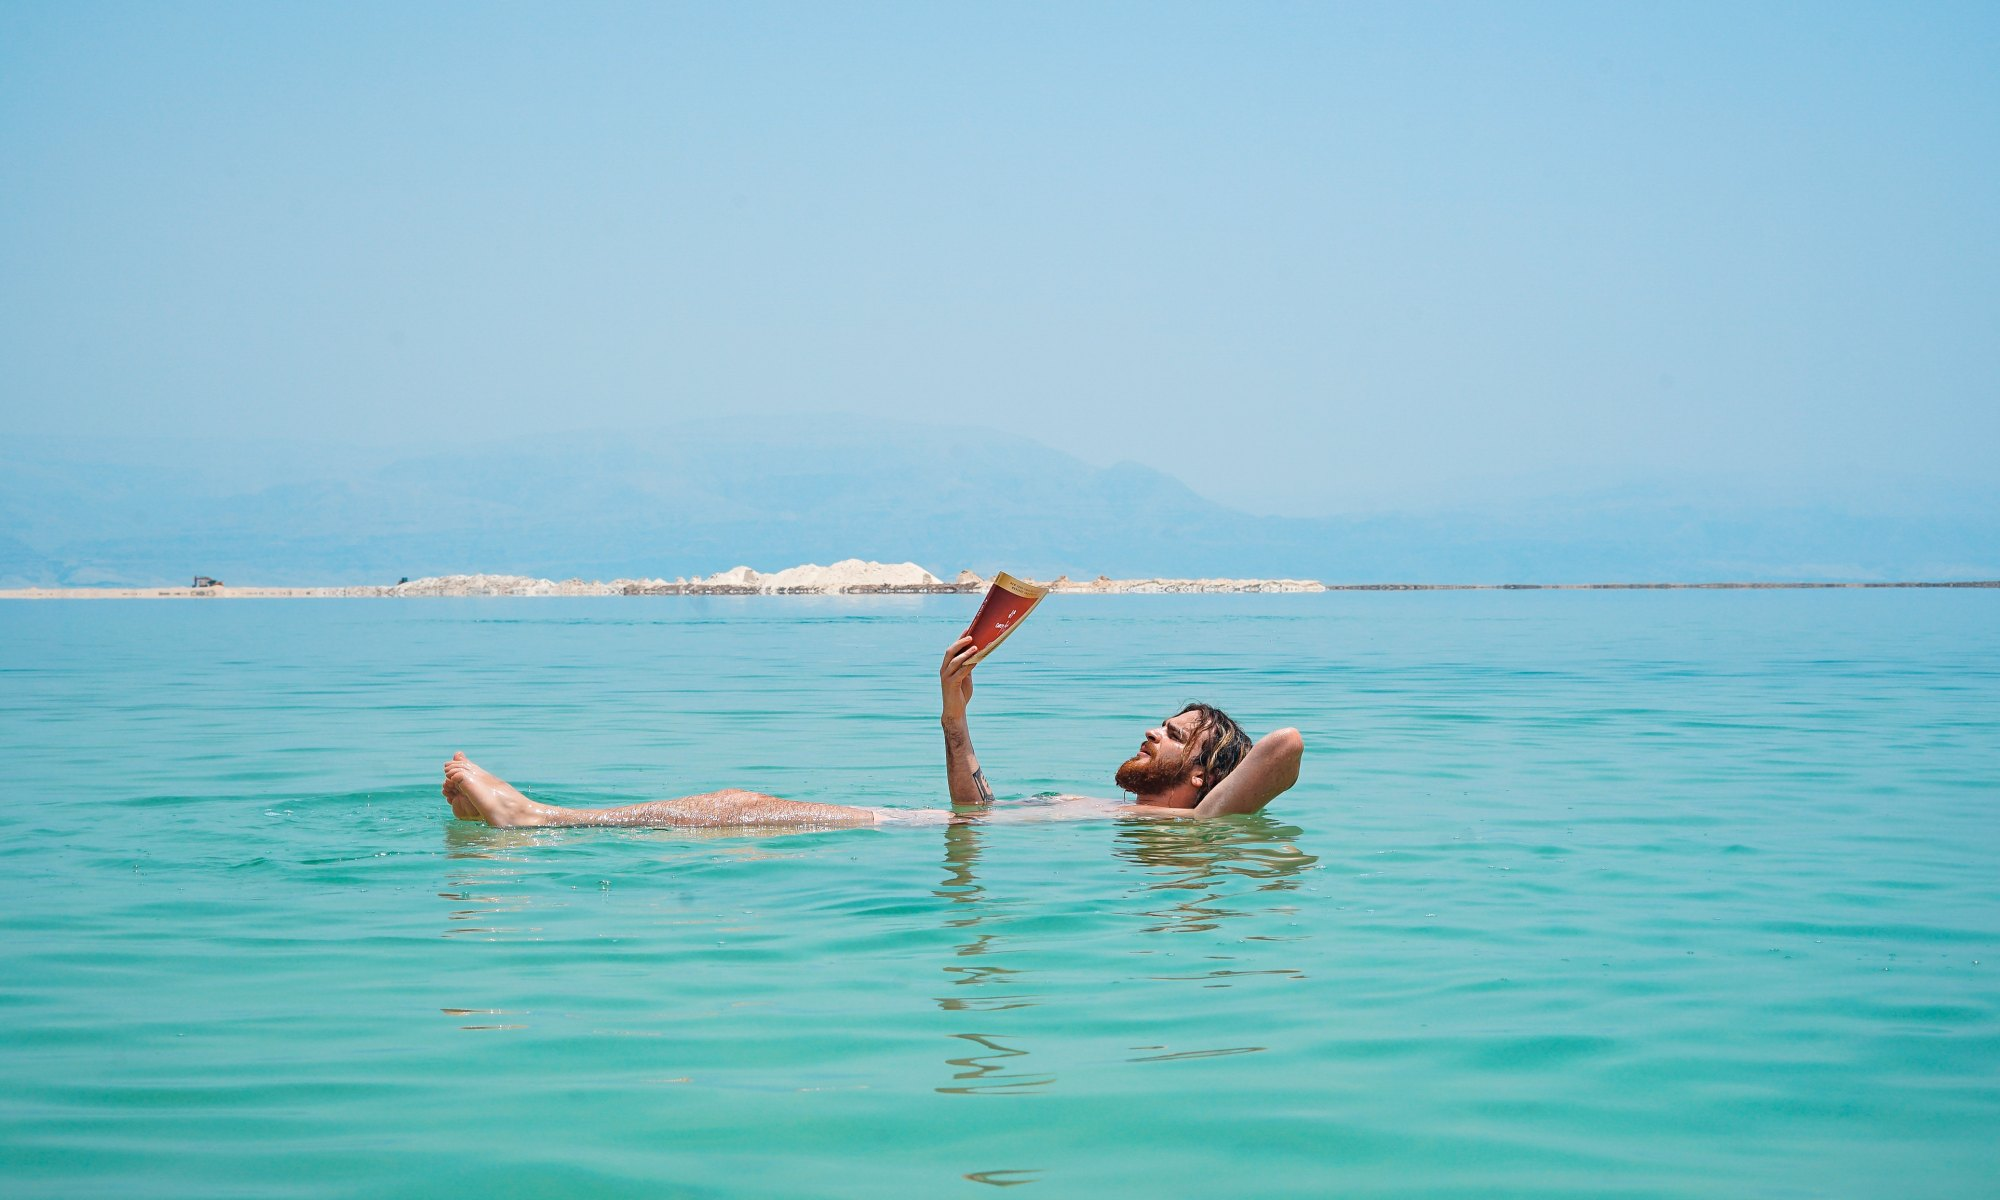 Man floating on turquoise body of water reading a book